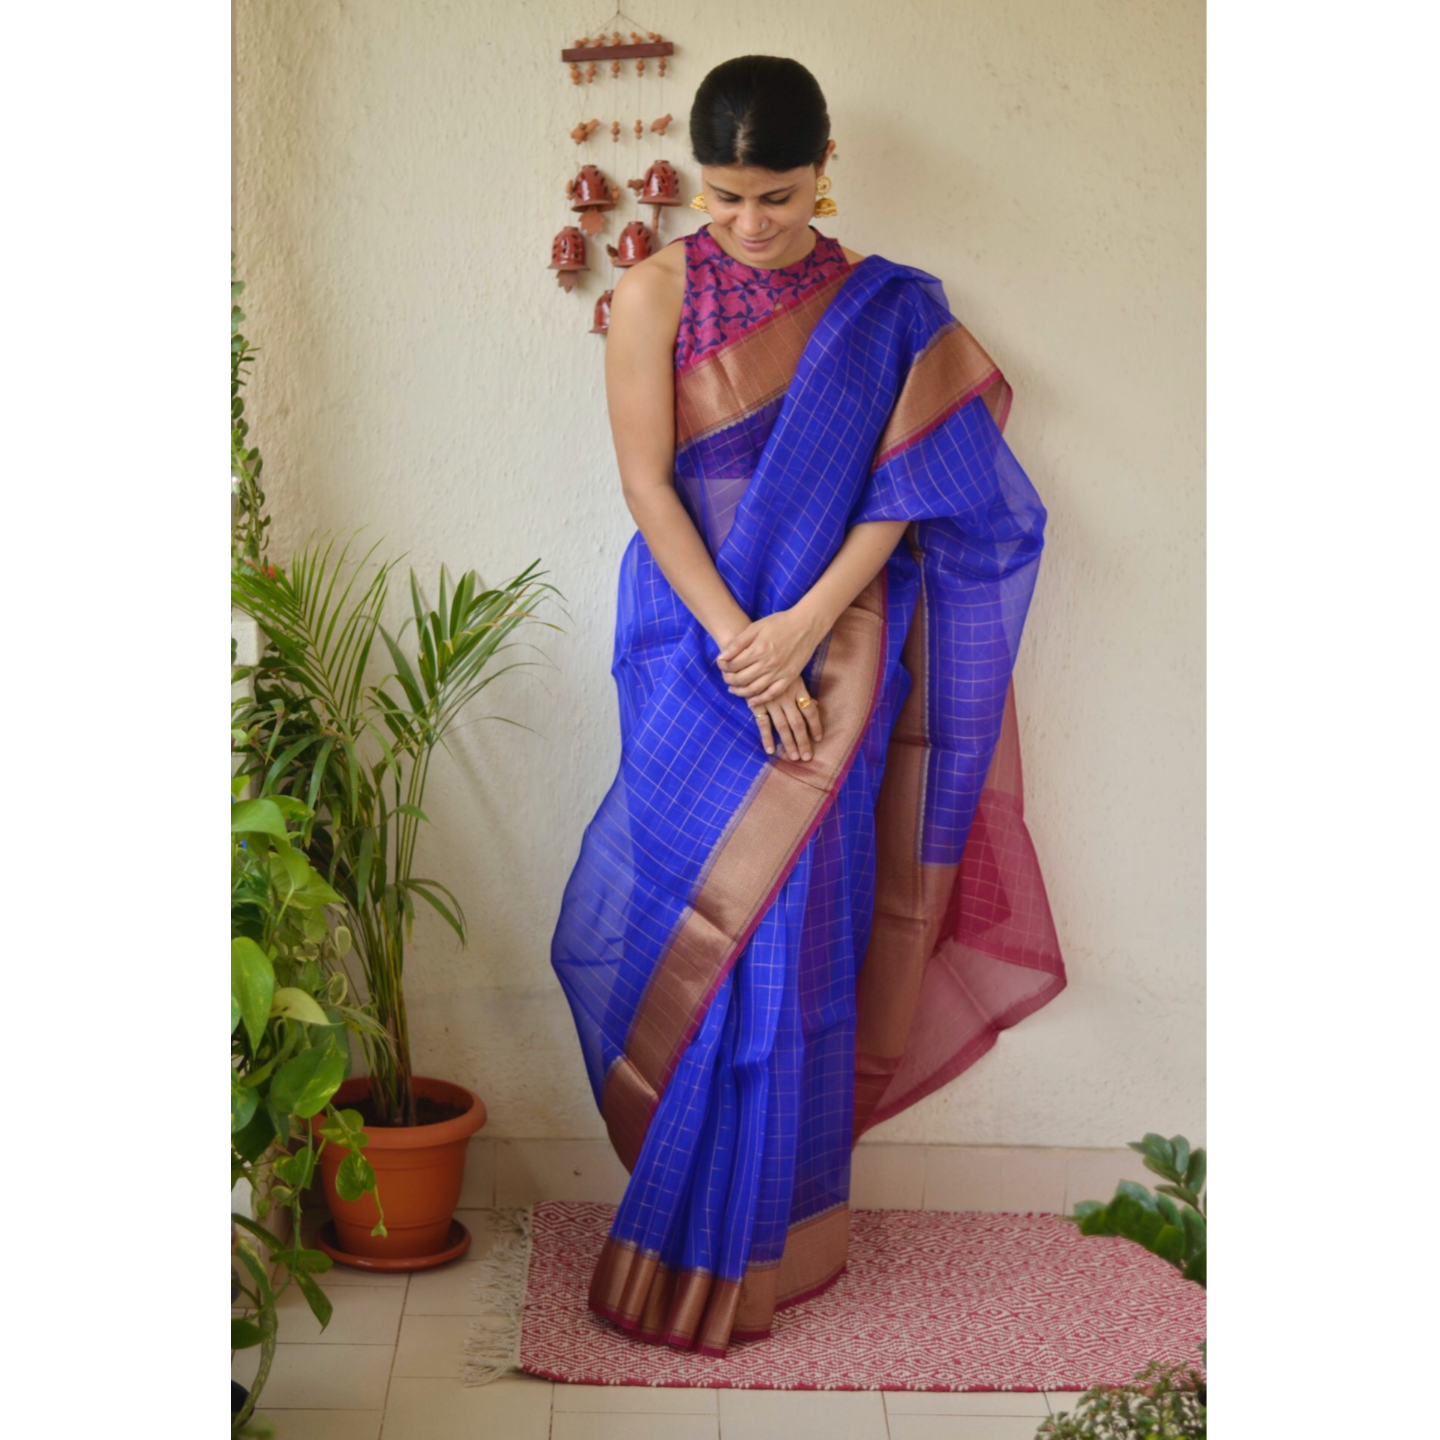 Handwoven organza  2x2 sheer silk saree with jari border.